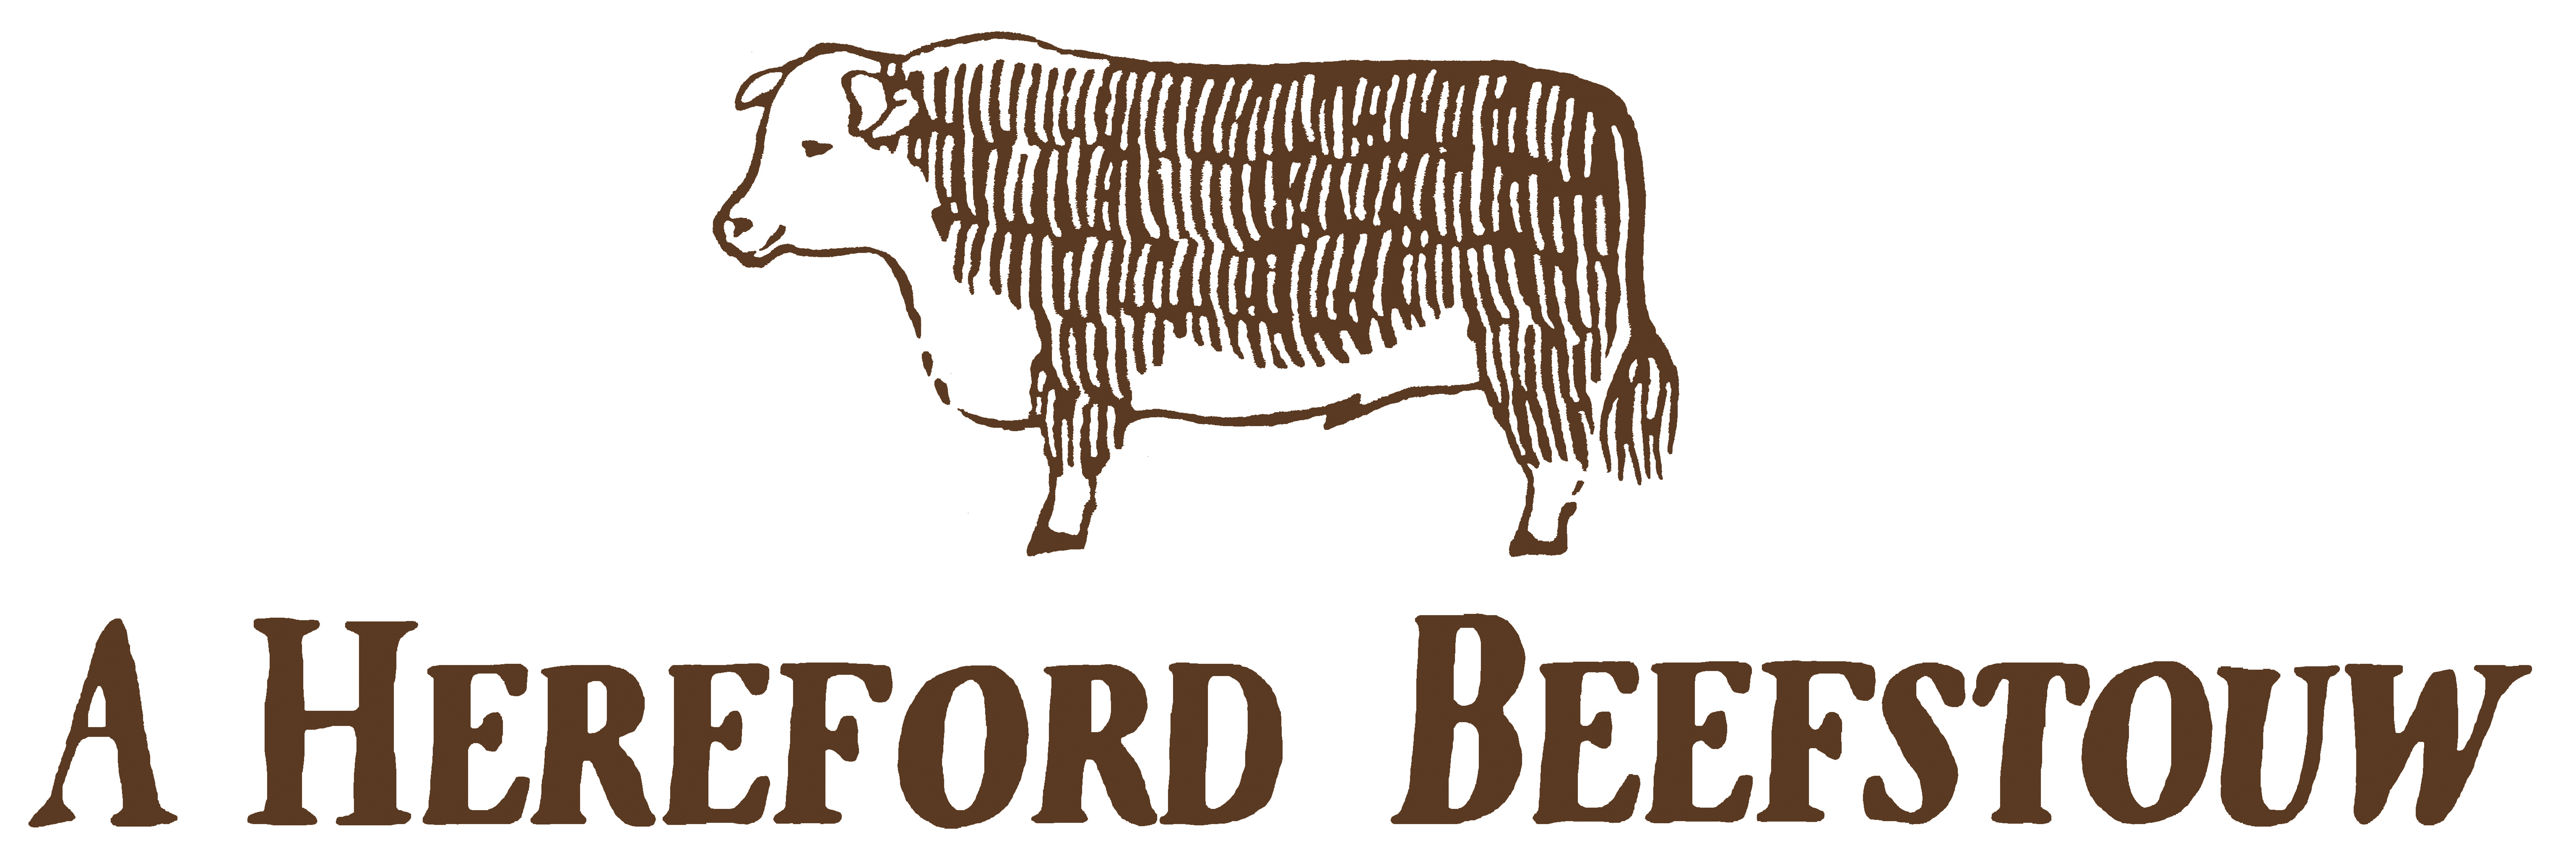 A Hereford Beefstouw